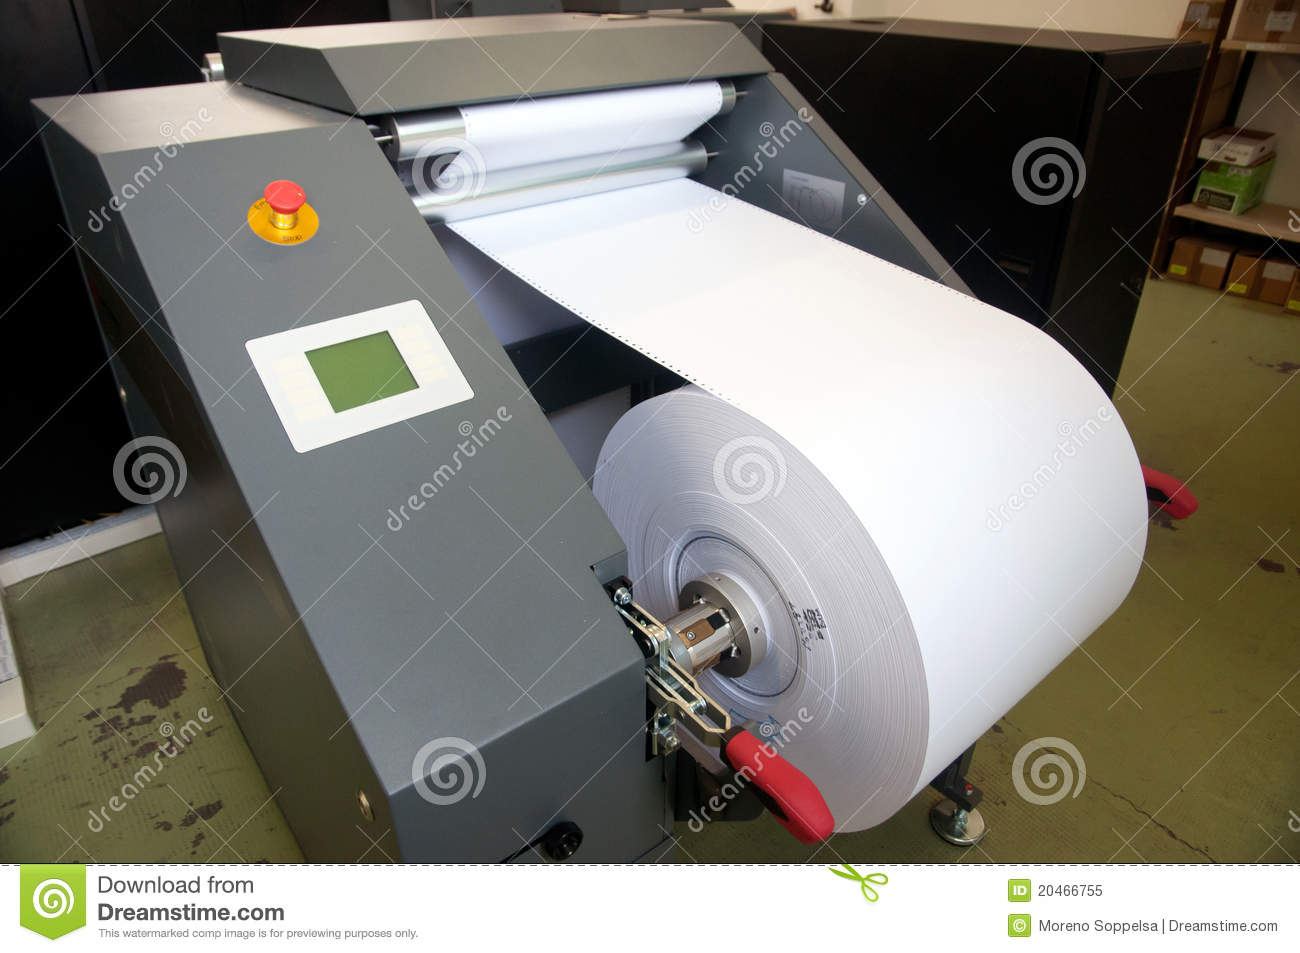 Digital press printing machine (detail)